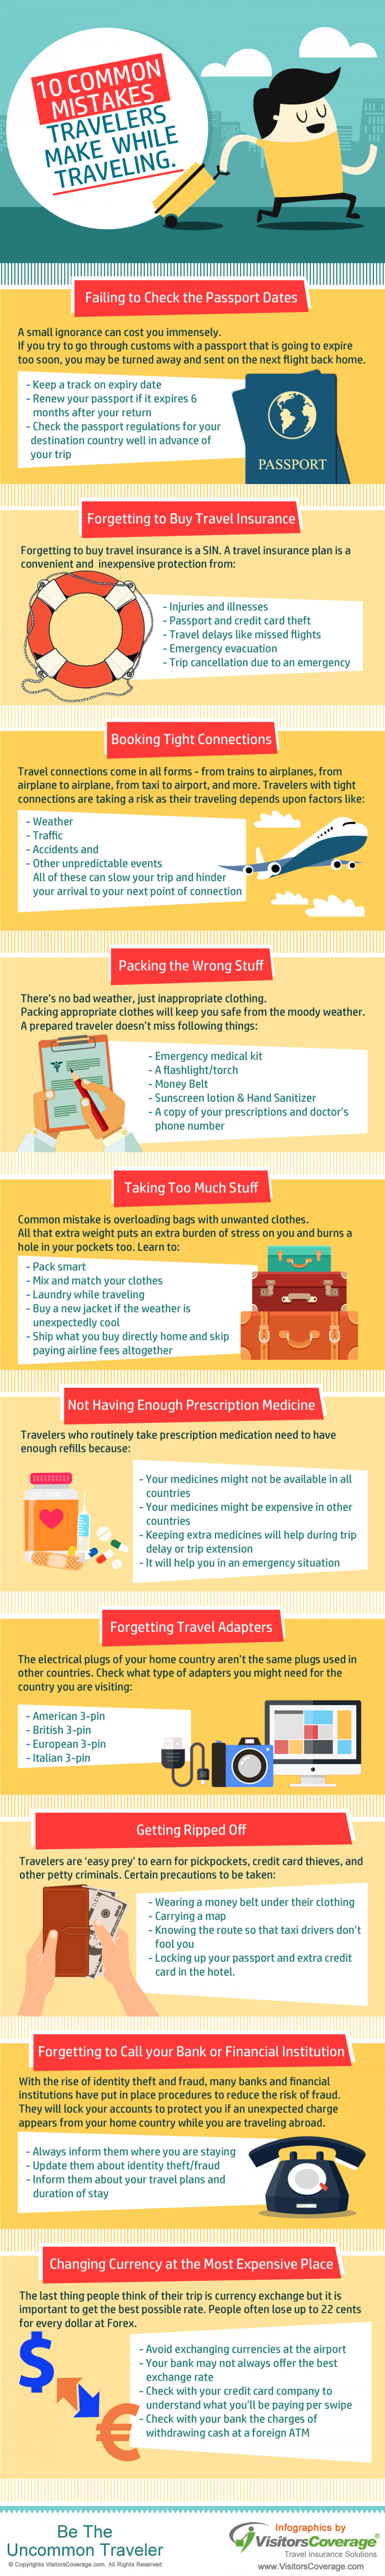 10 Common Mistakes Travelers Make while Traveling Infographic